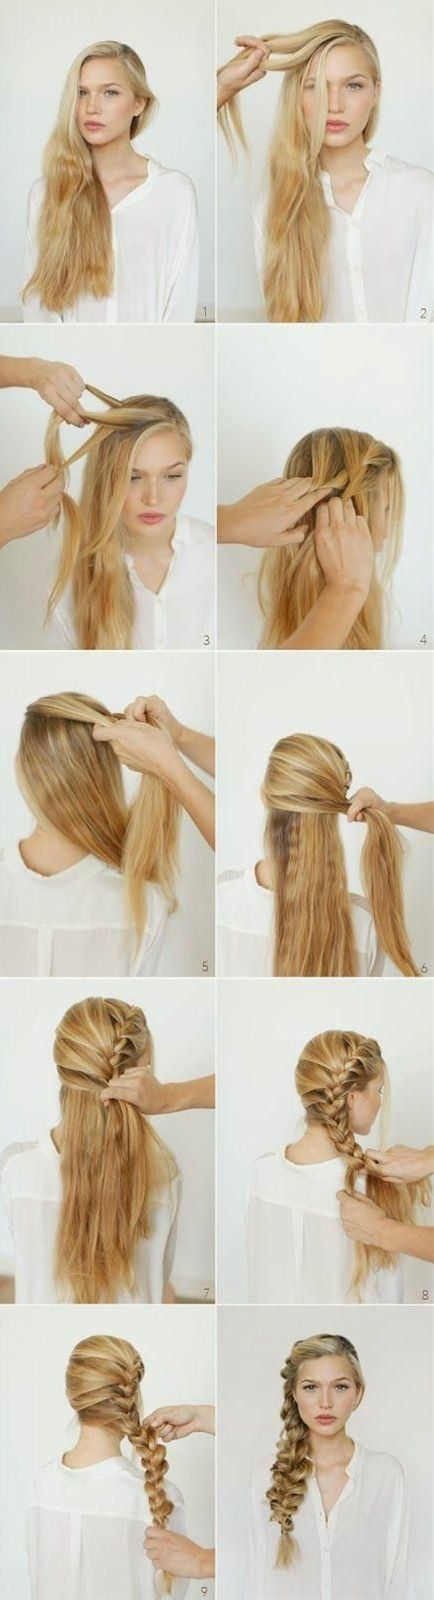 Do you want to create a new and fun hairstyle on on your long hair? You can refer the romantic side braided hairstyle. Begin braiding from the front side. Add locks in with braiding going on. Put the braided hair at one side. Add some hair accessory.